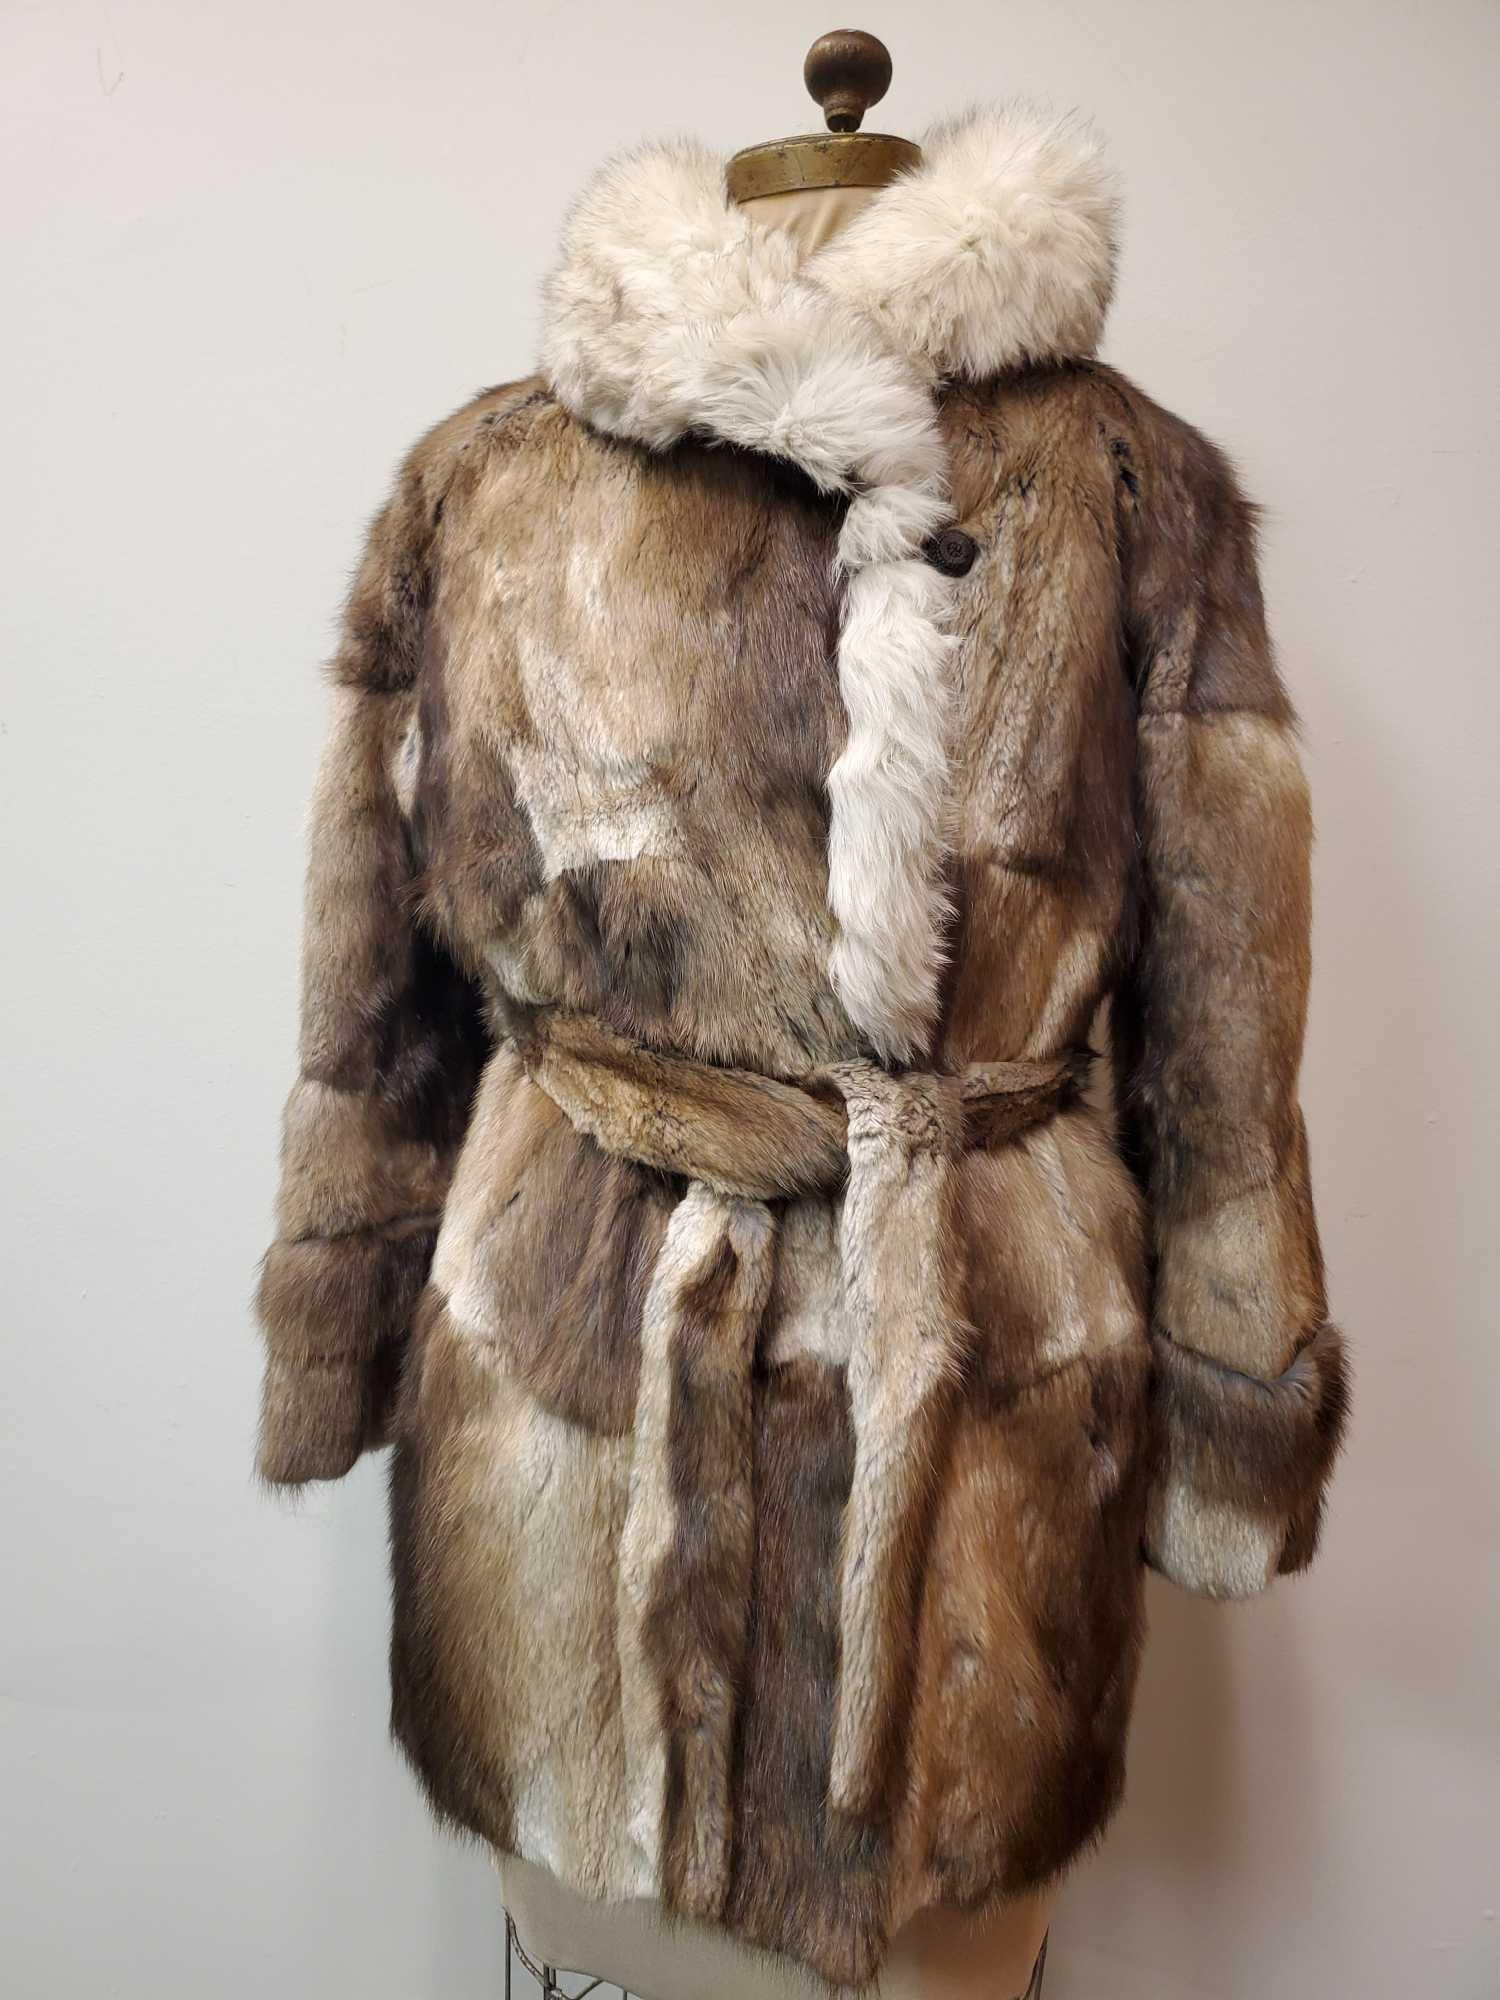 Patched Ranched Mink with Fox Collar Fur Coat by Evans